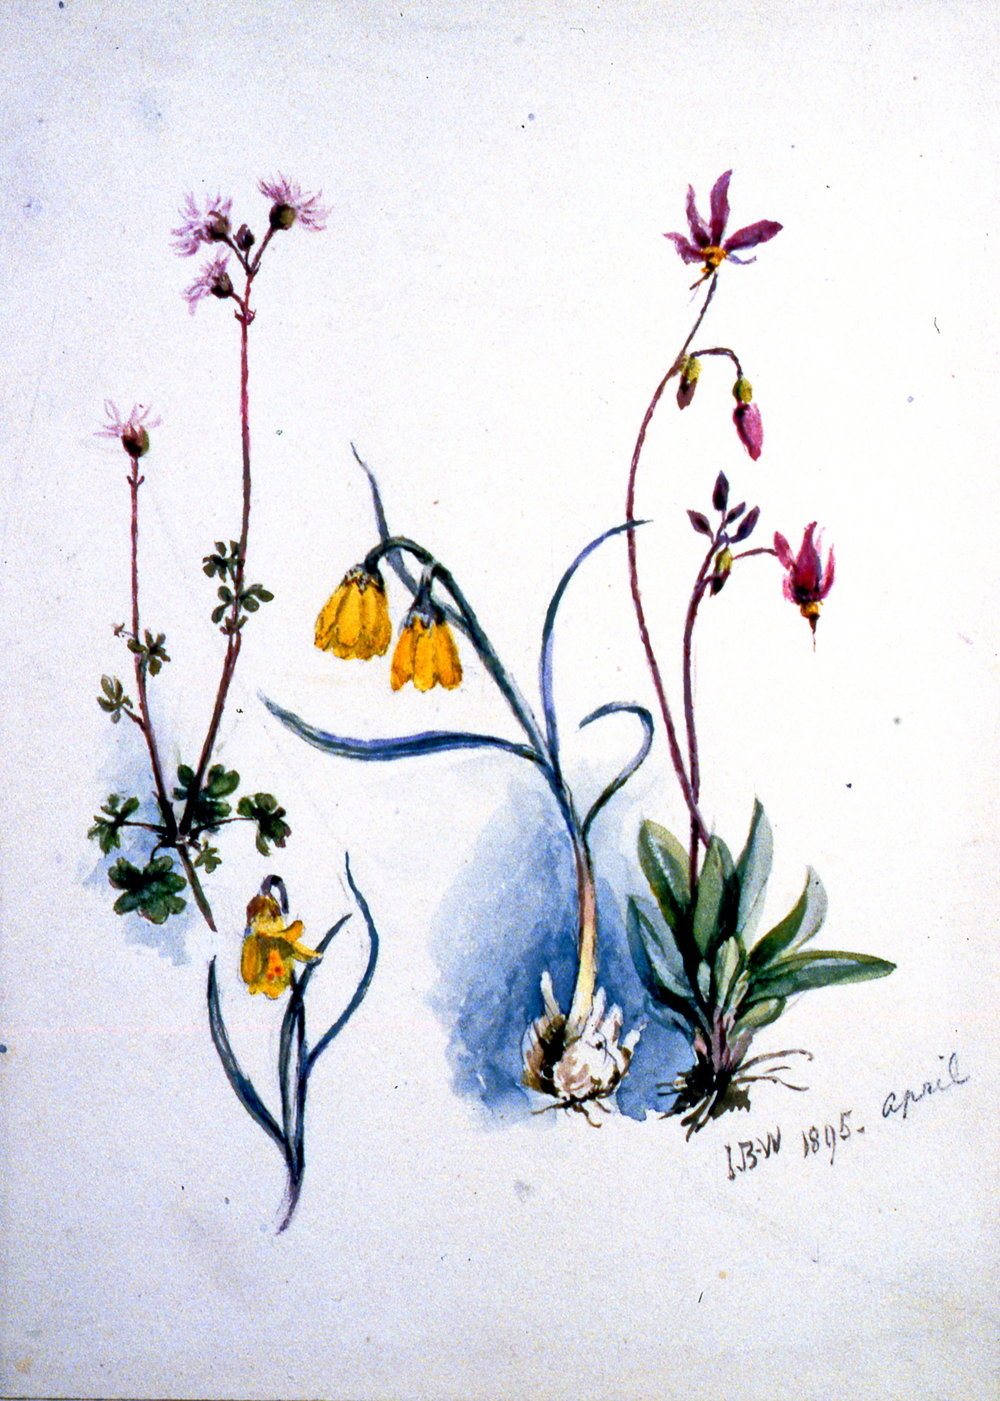 Yellow Lily , 1895, Julia Bullock-Webster, watercolour on paper, 22.6 x 16.3 cm, 1983.02.17. Gift of Mrs. Barbara Steel.